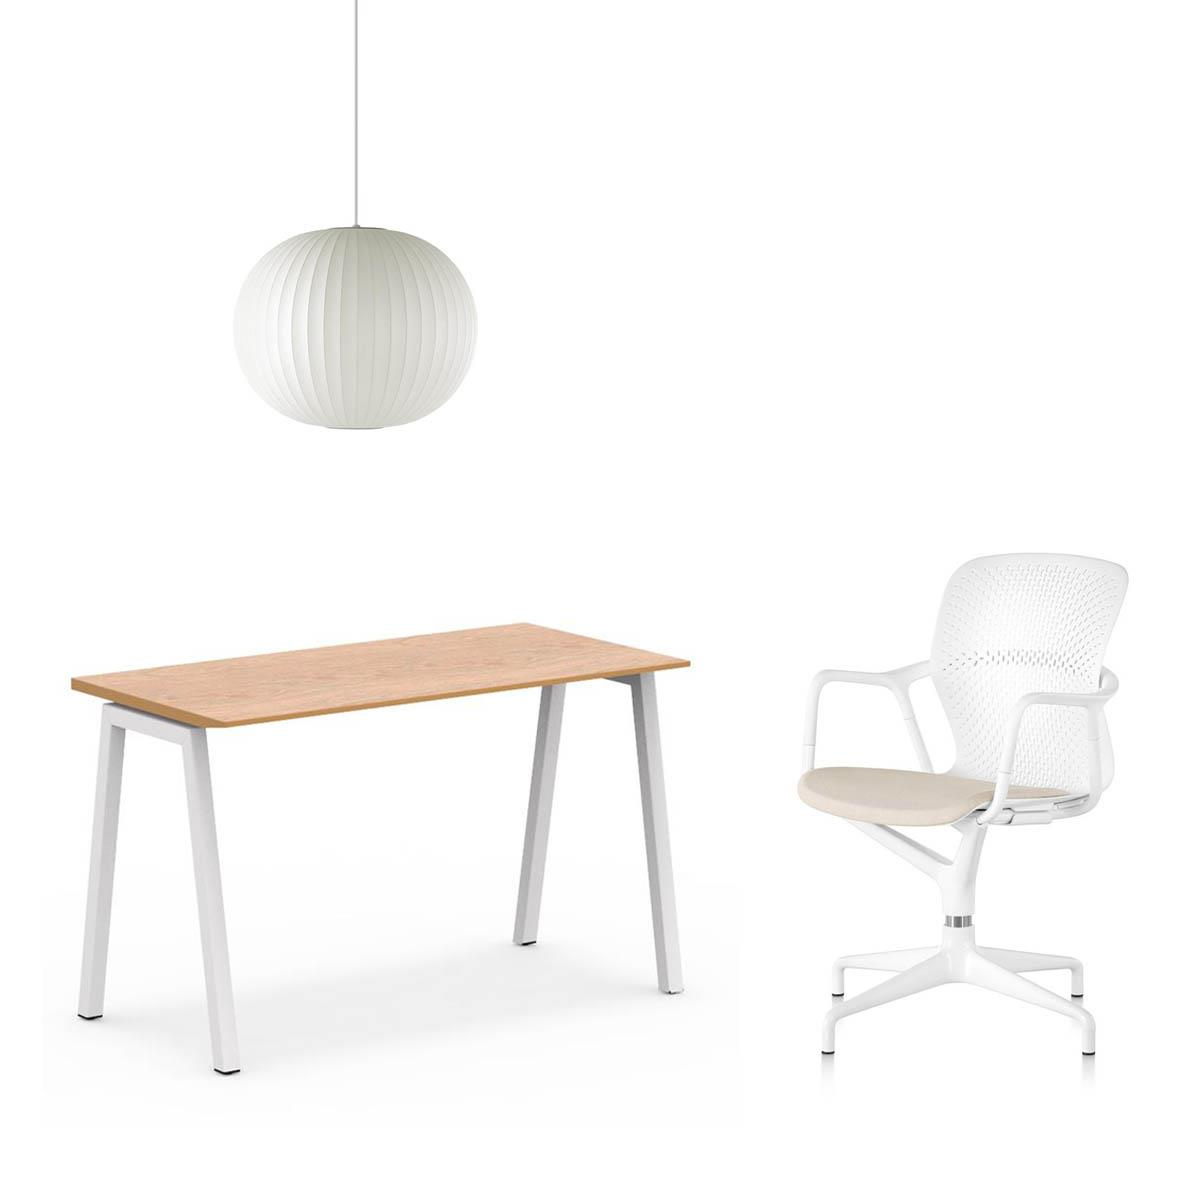 A1 Angled Table, Keyn Chair & Nelson Lamp